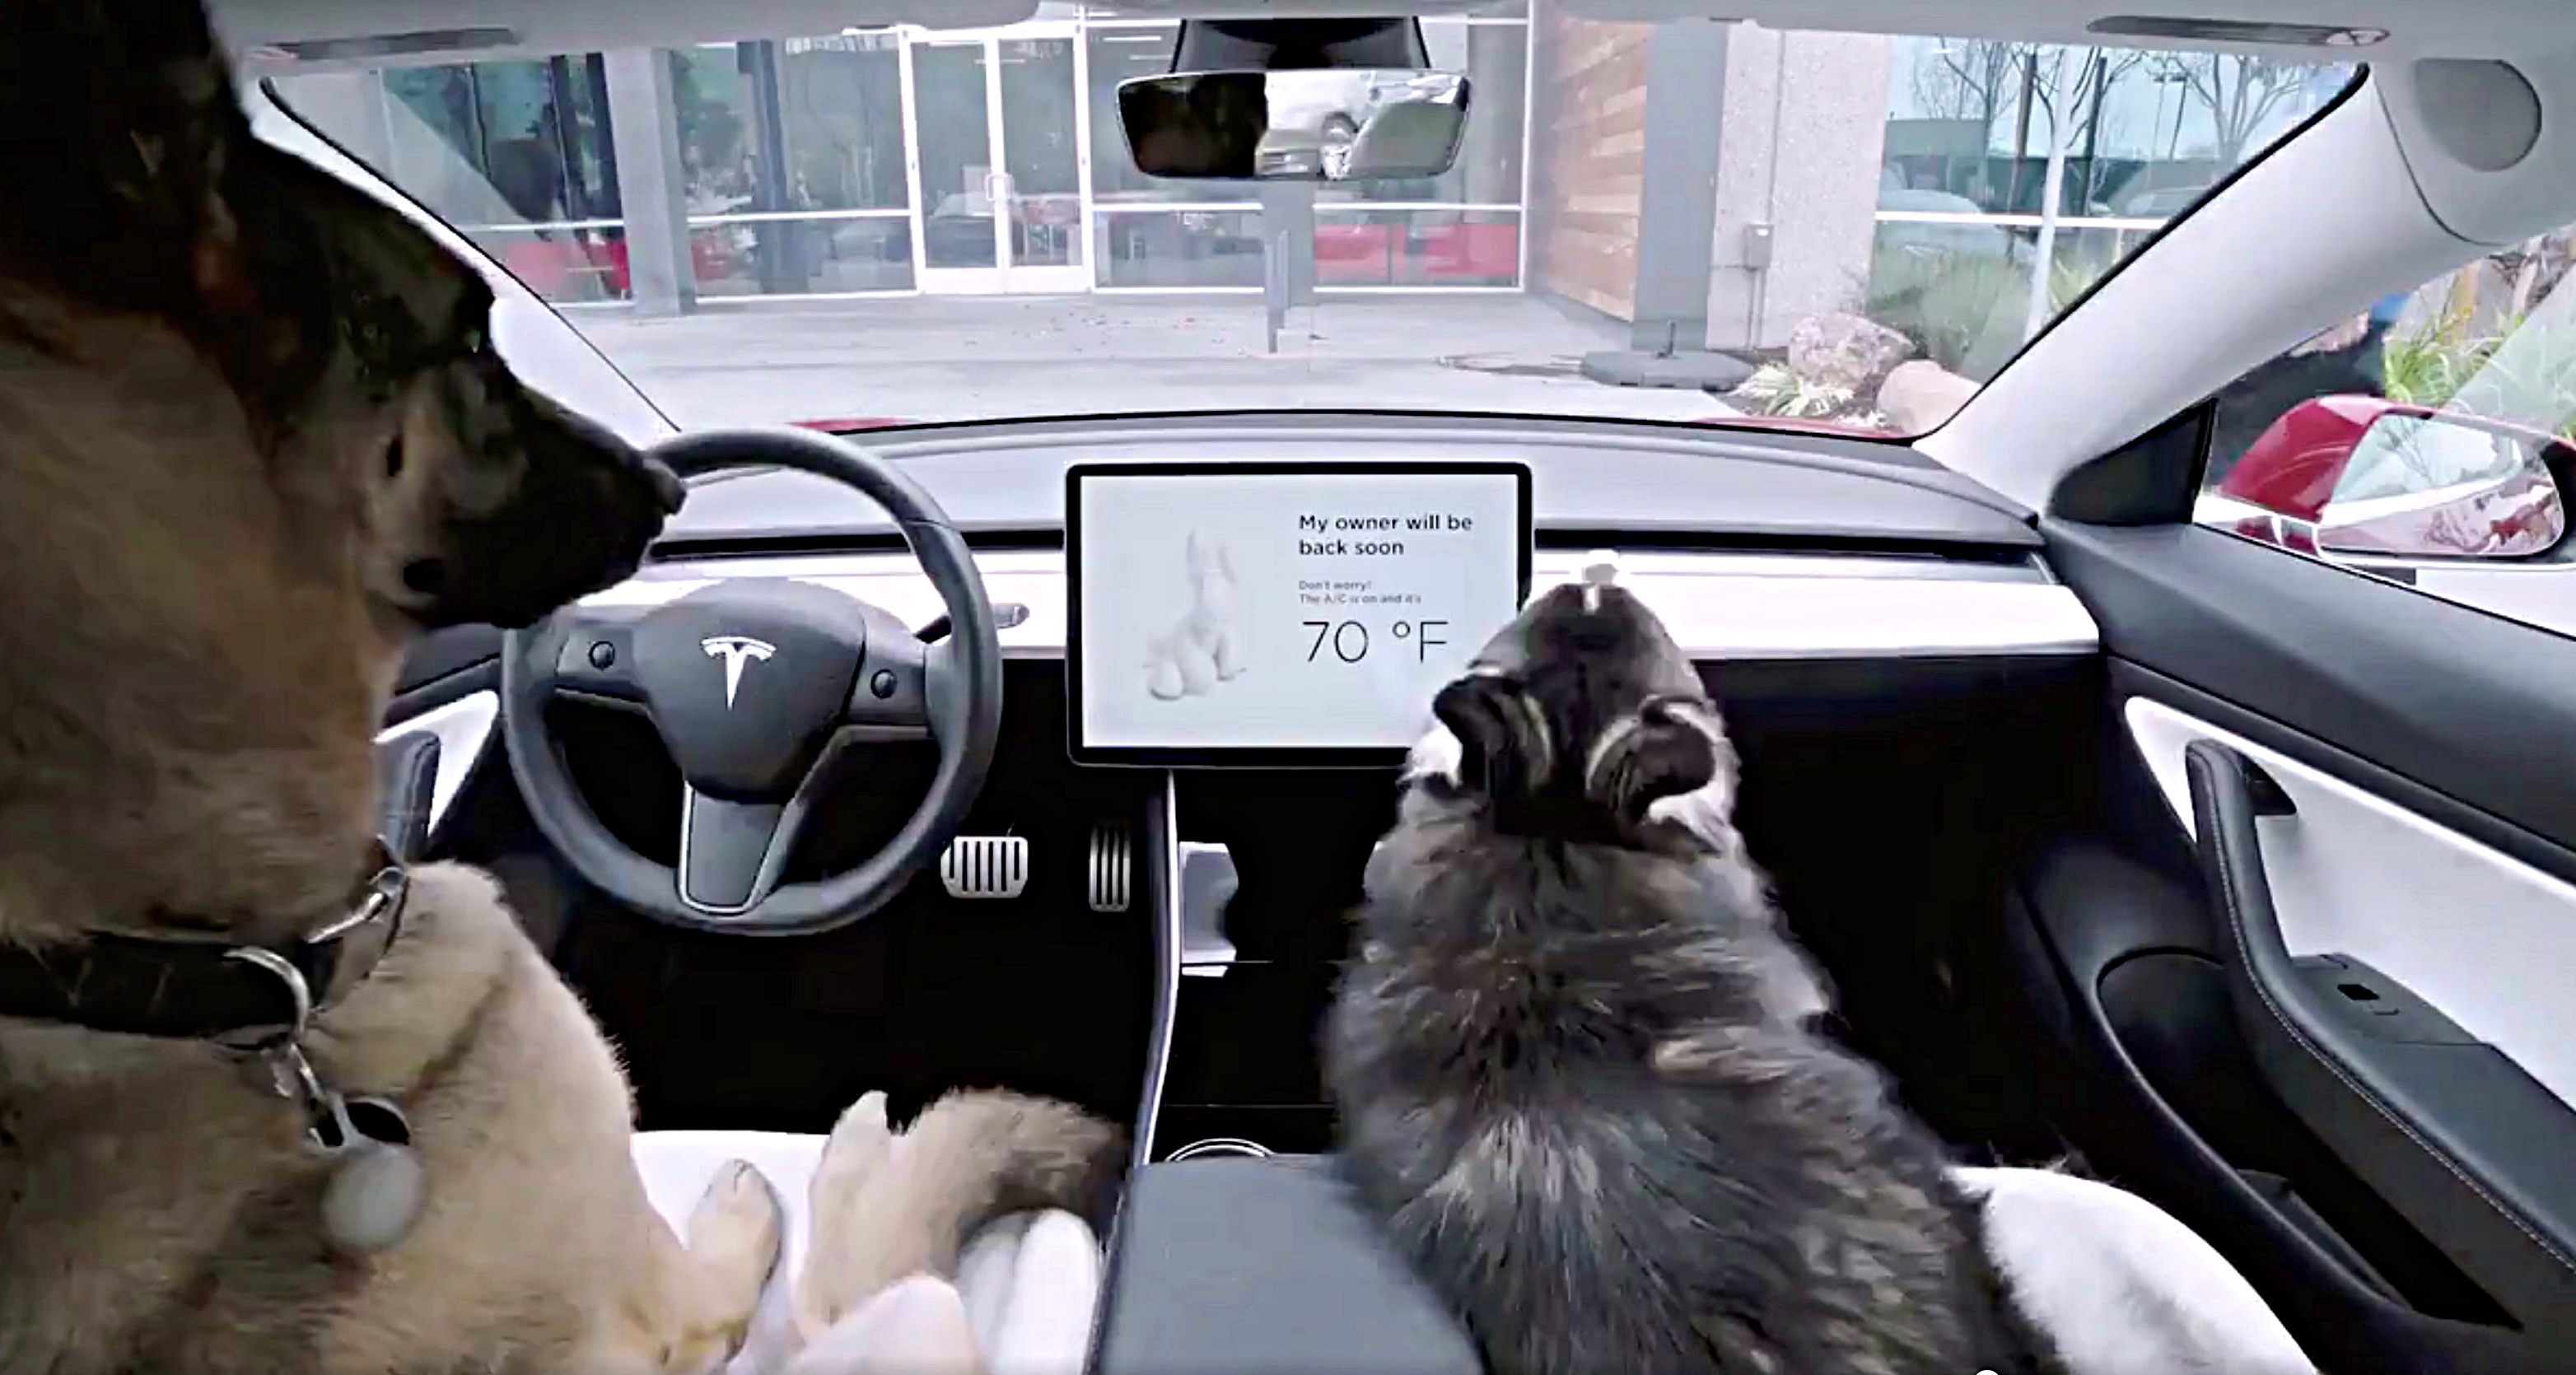 Tesla has rolled out a DOG MODE